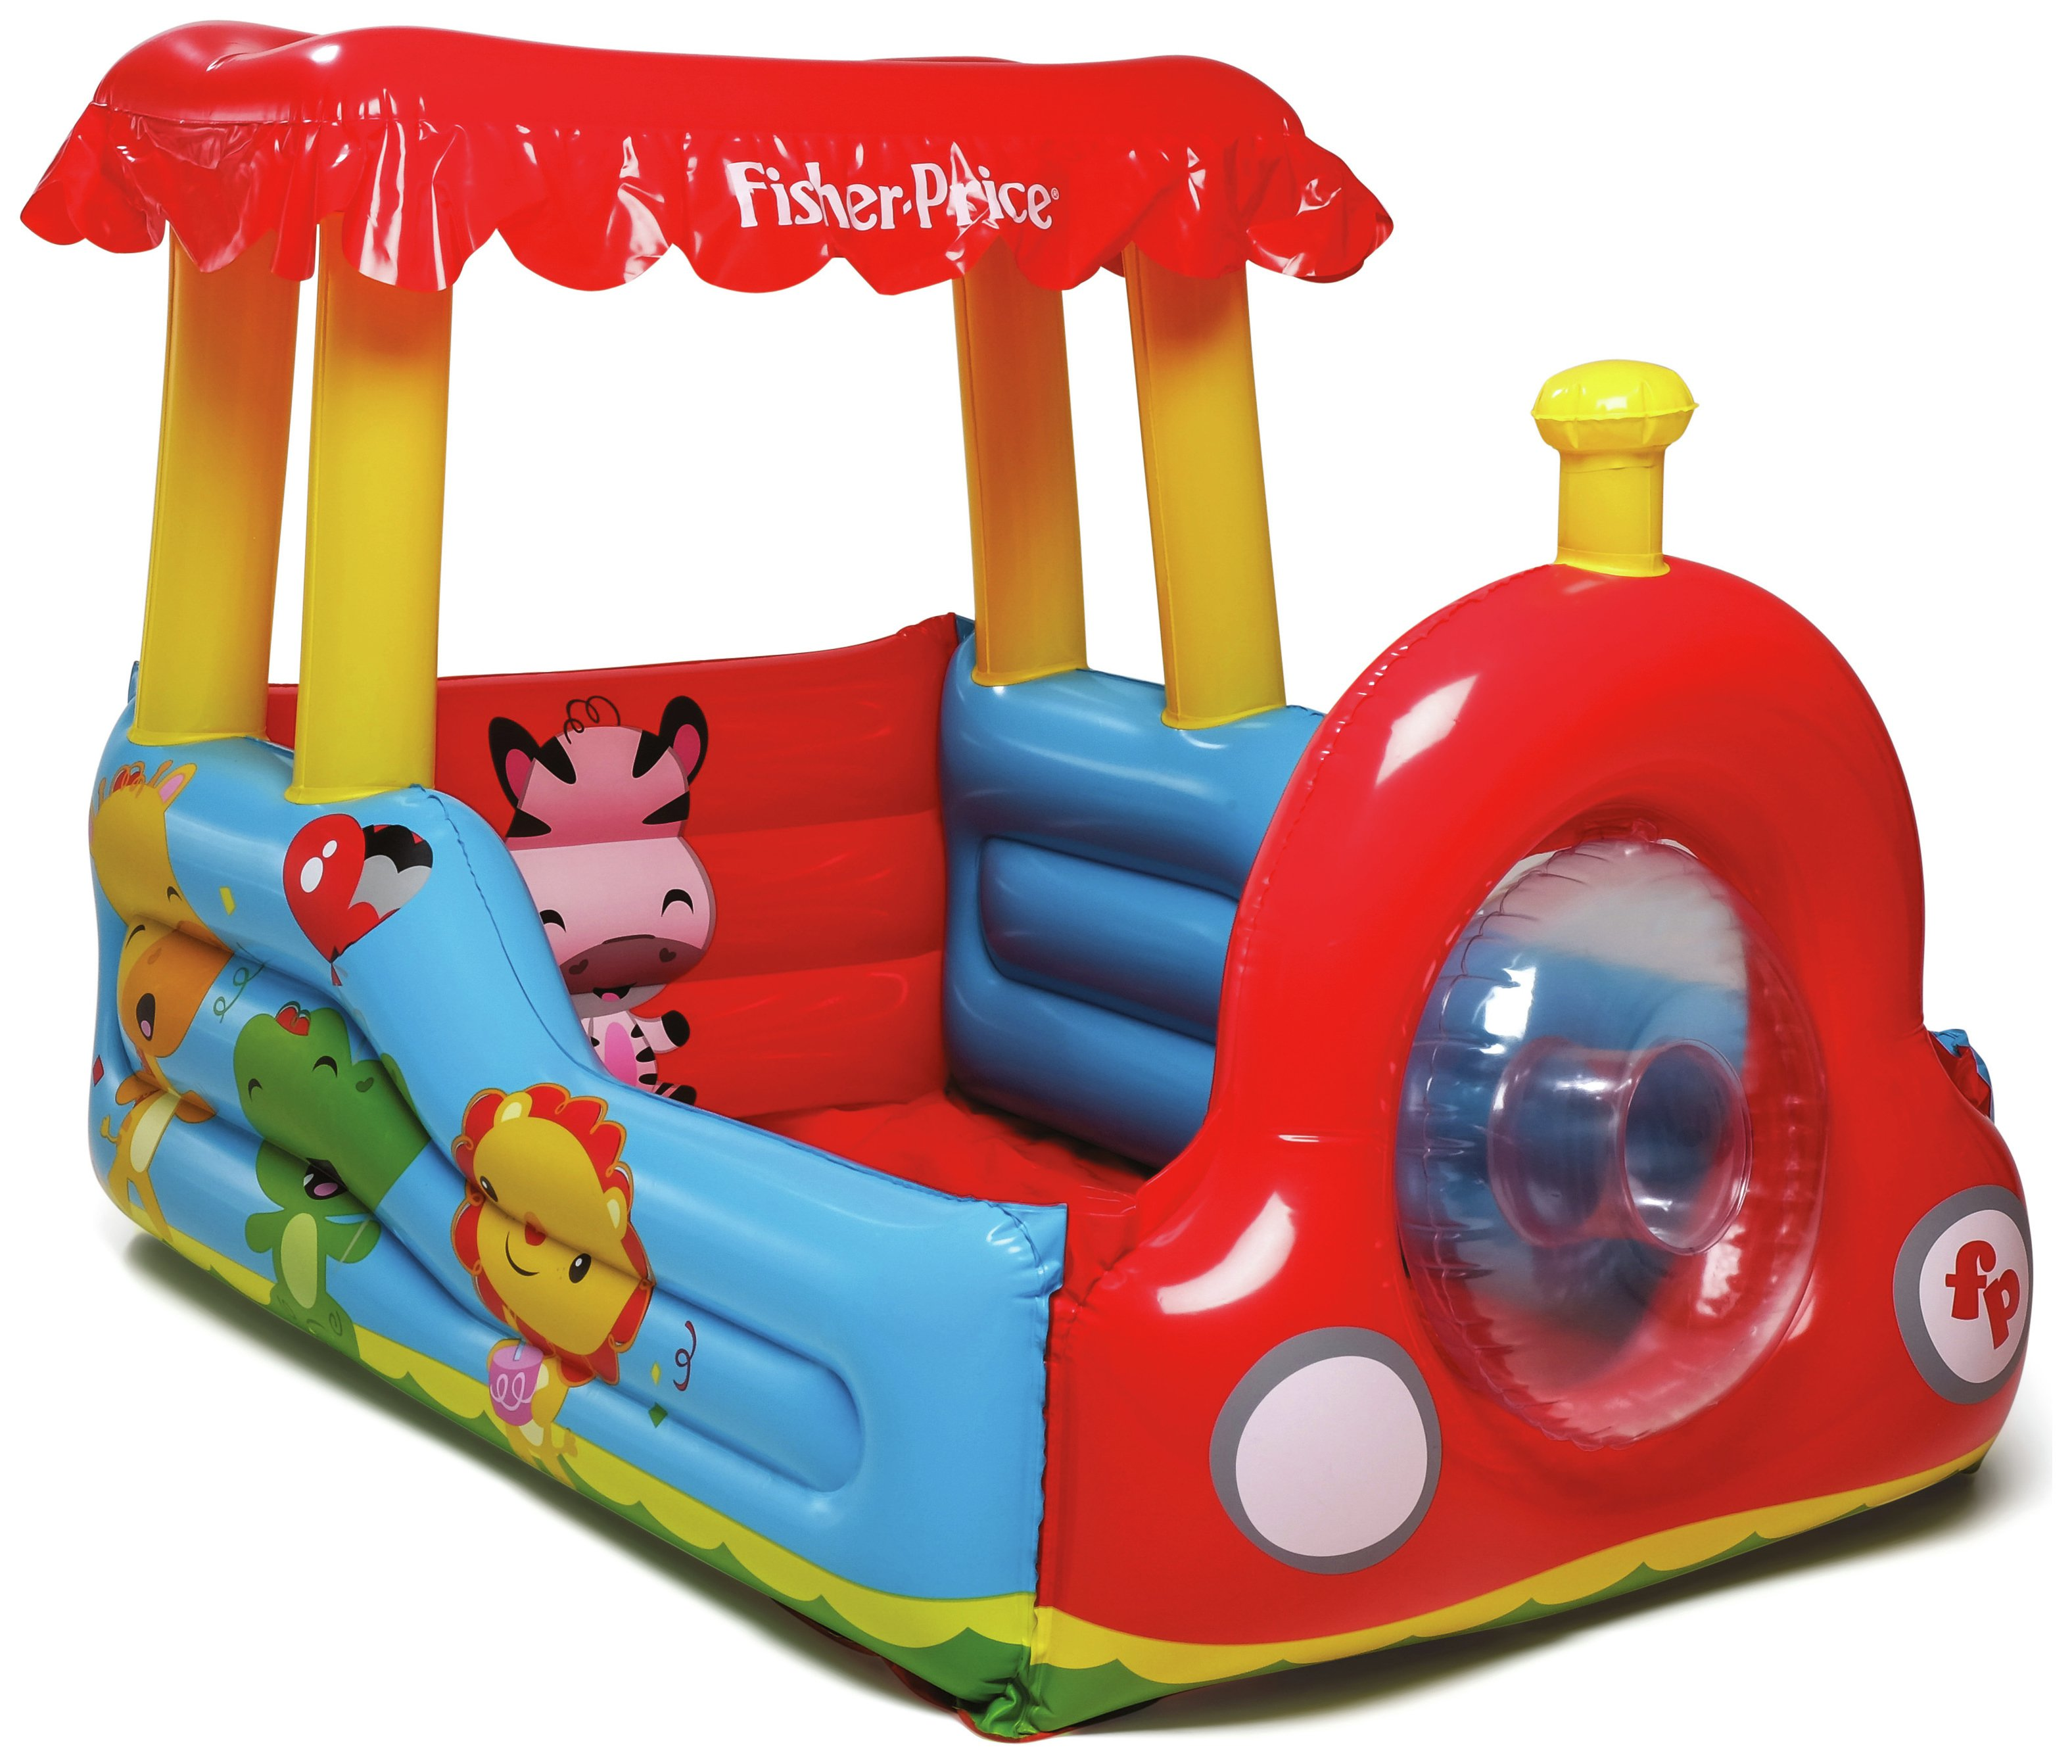 Image of Fisher-Price Train Ball Pit